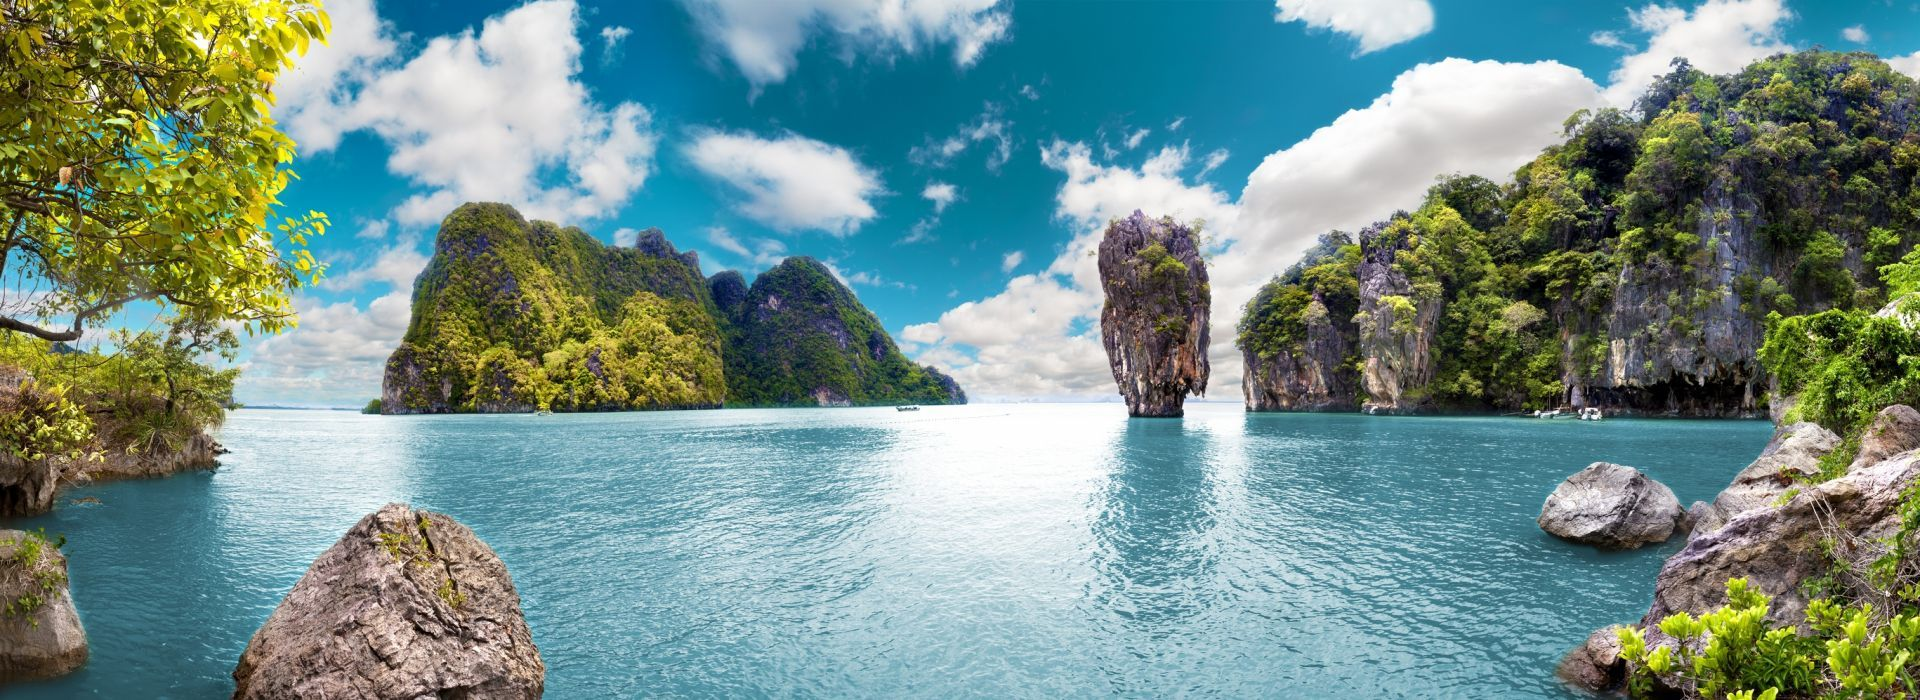 Sailing, yachting and motor boating Tours in Thailand